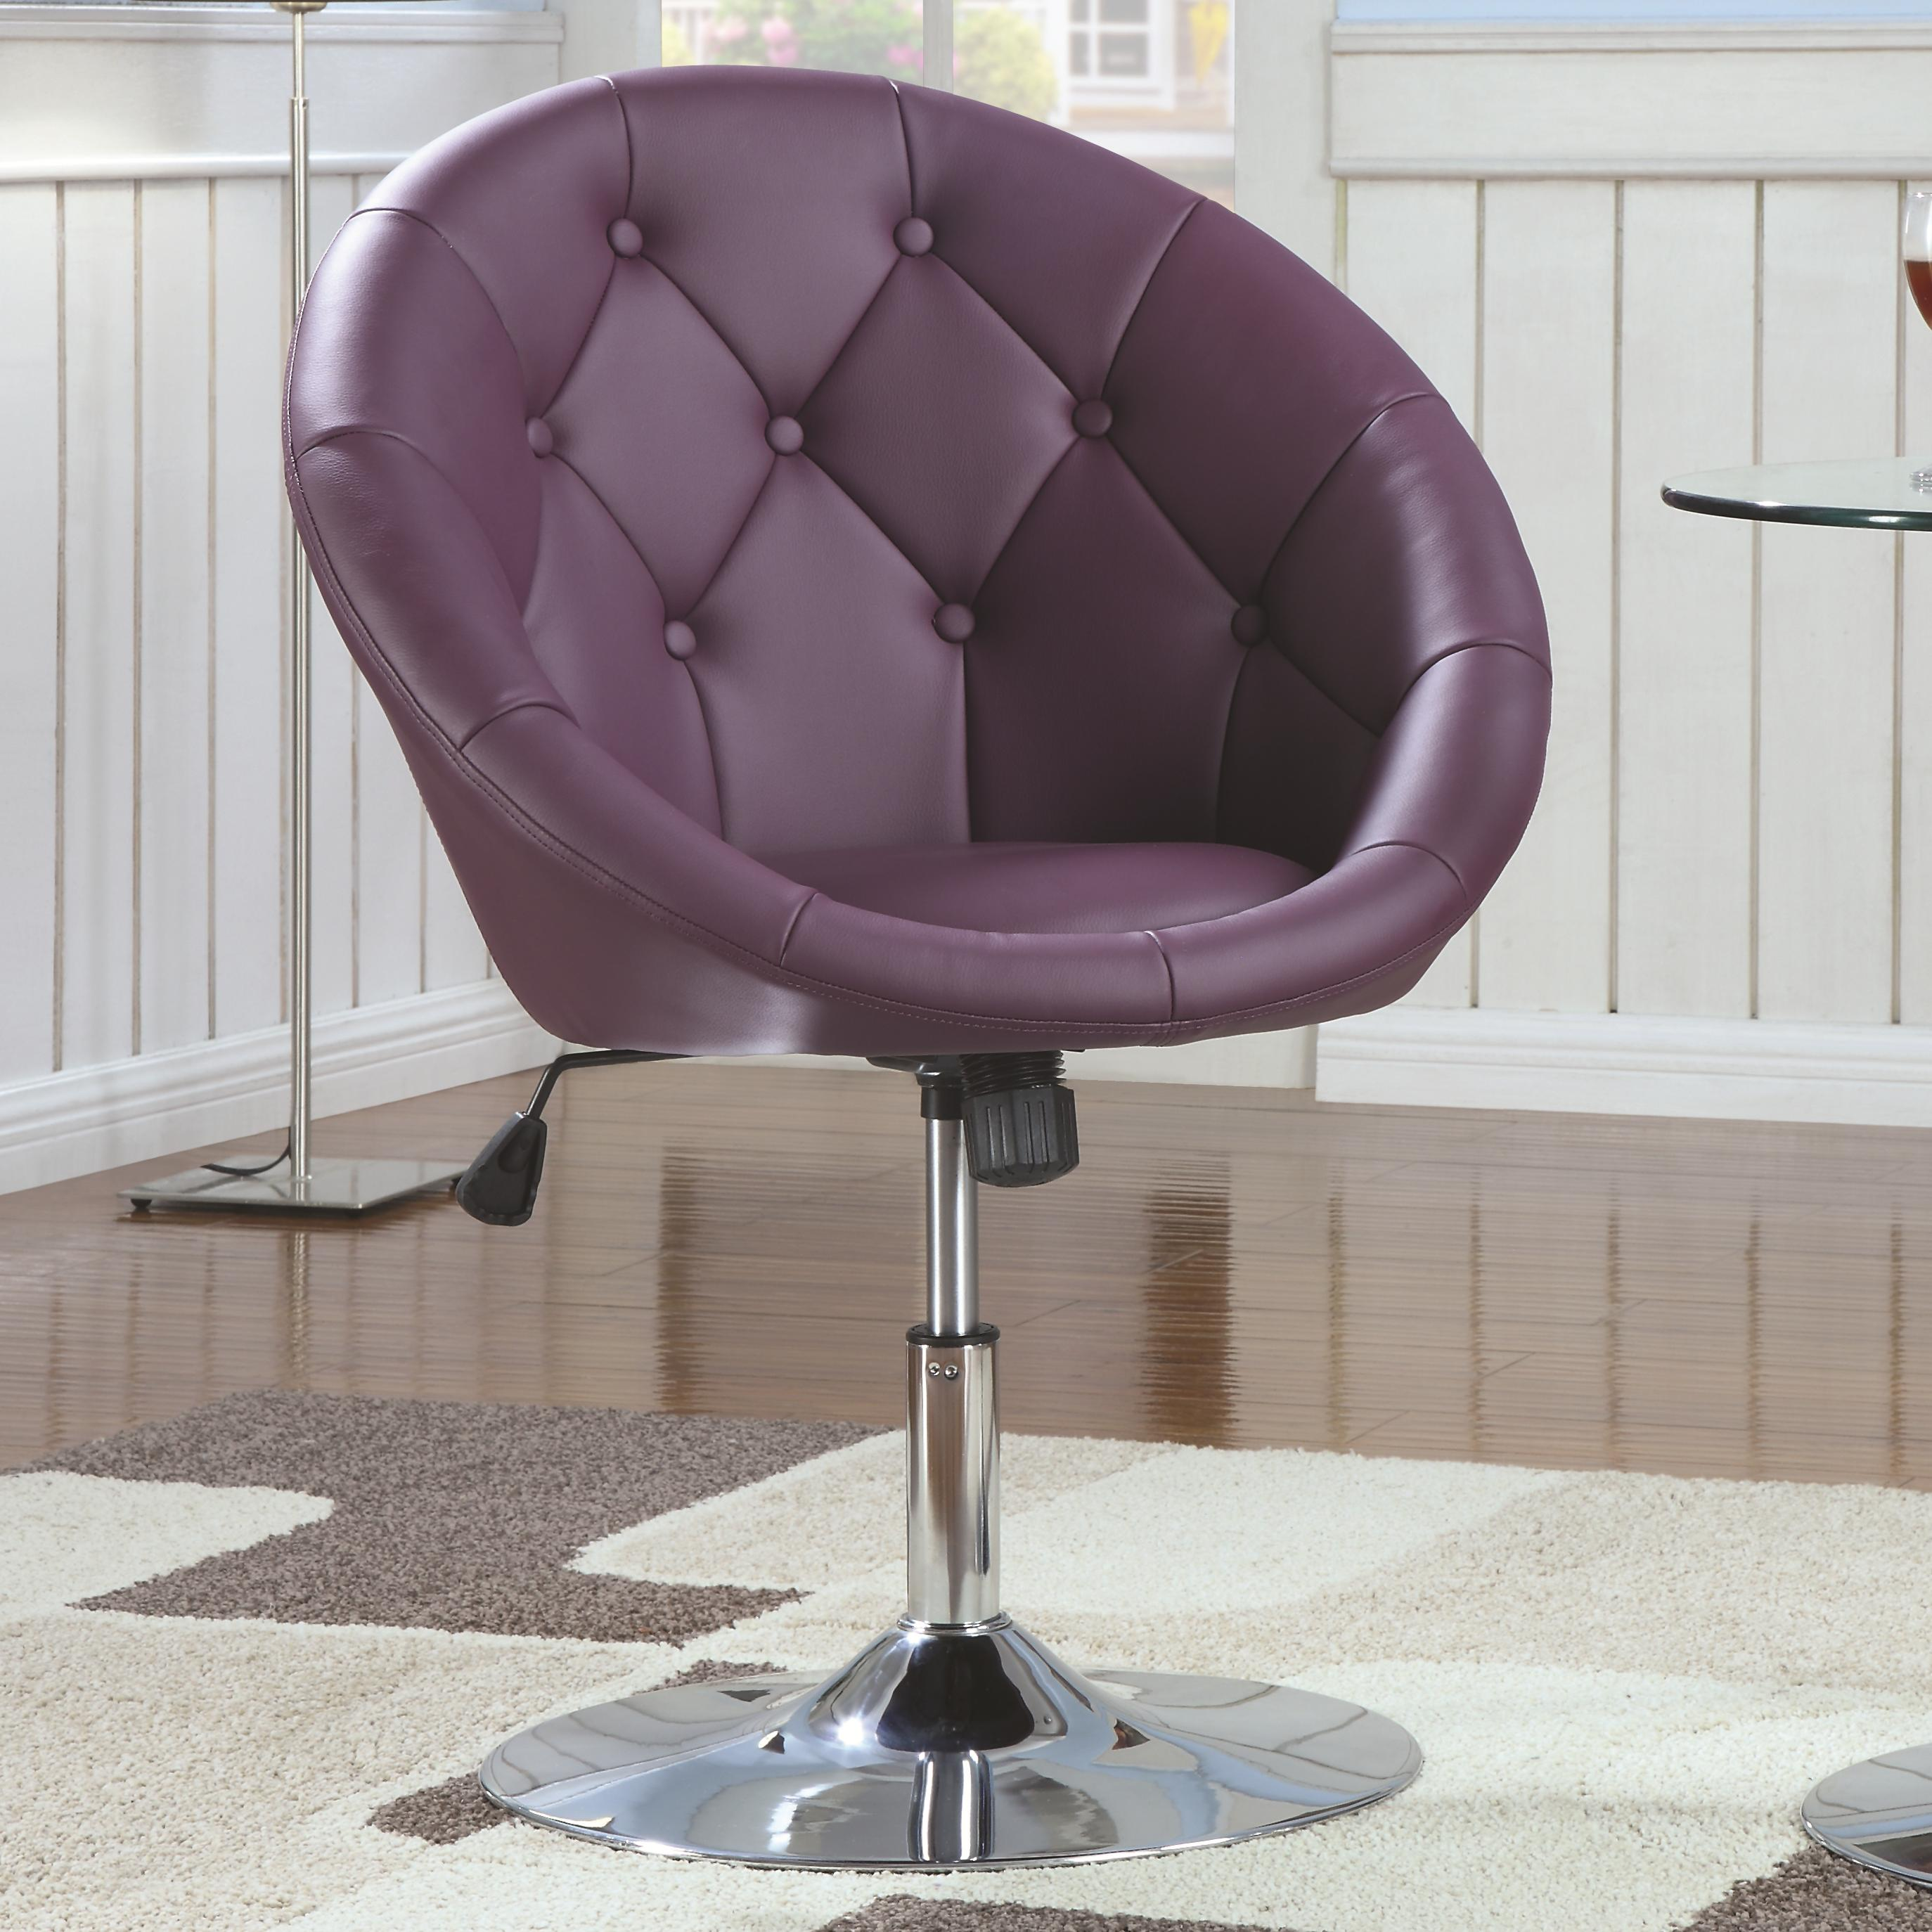 Coaster Dining Chairs and Bar Stools Swivel Chair (Purple) - Item Number: 102581